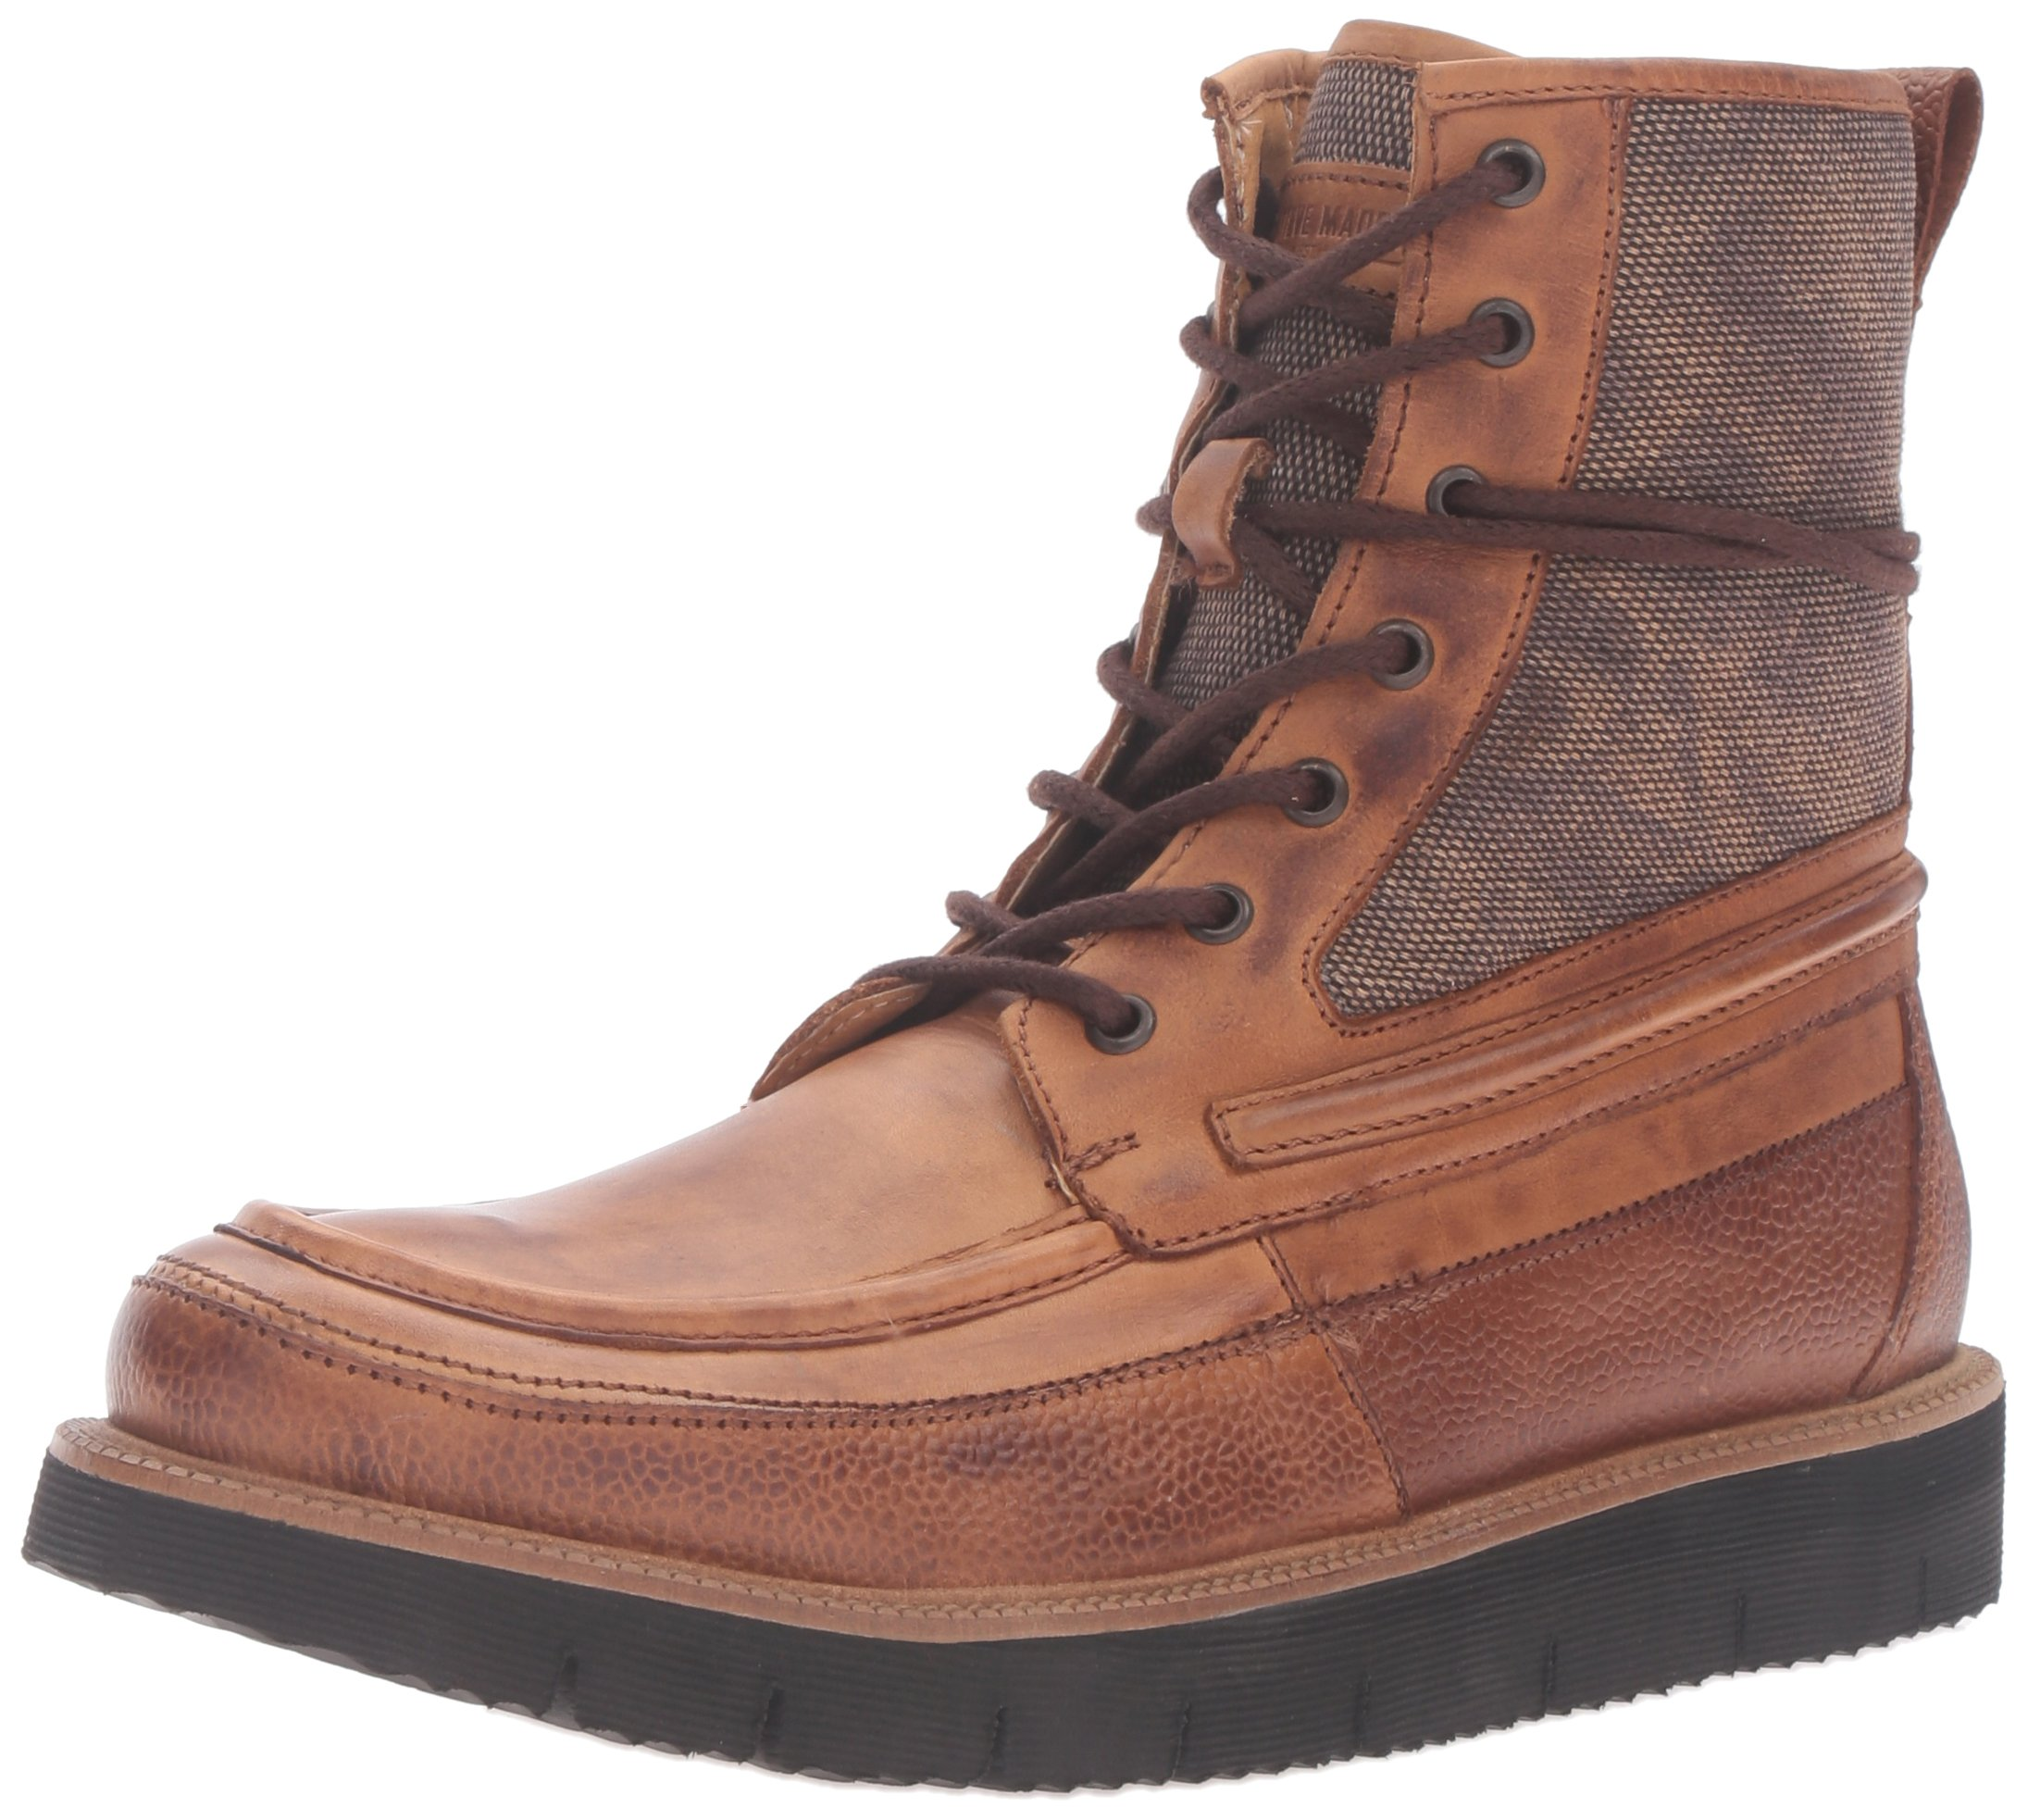 Steve Madden Men's Redmund Winter Boot, Tan, 11 M US